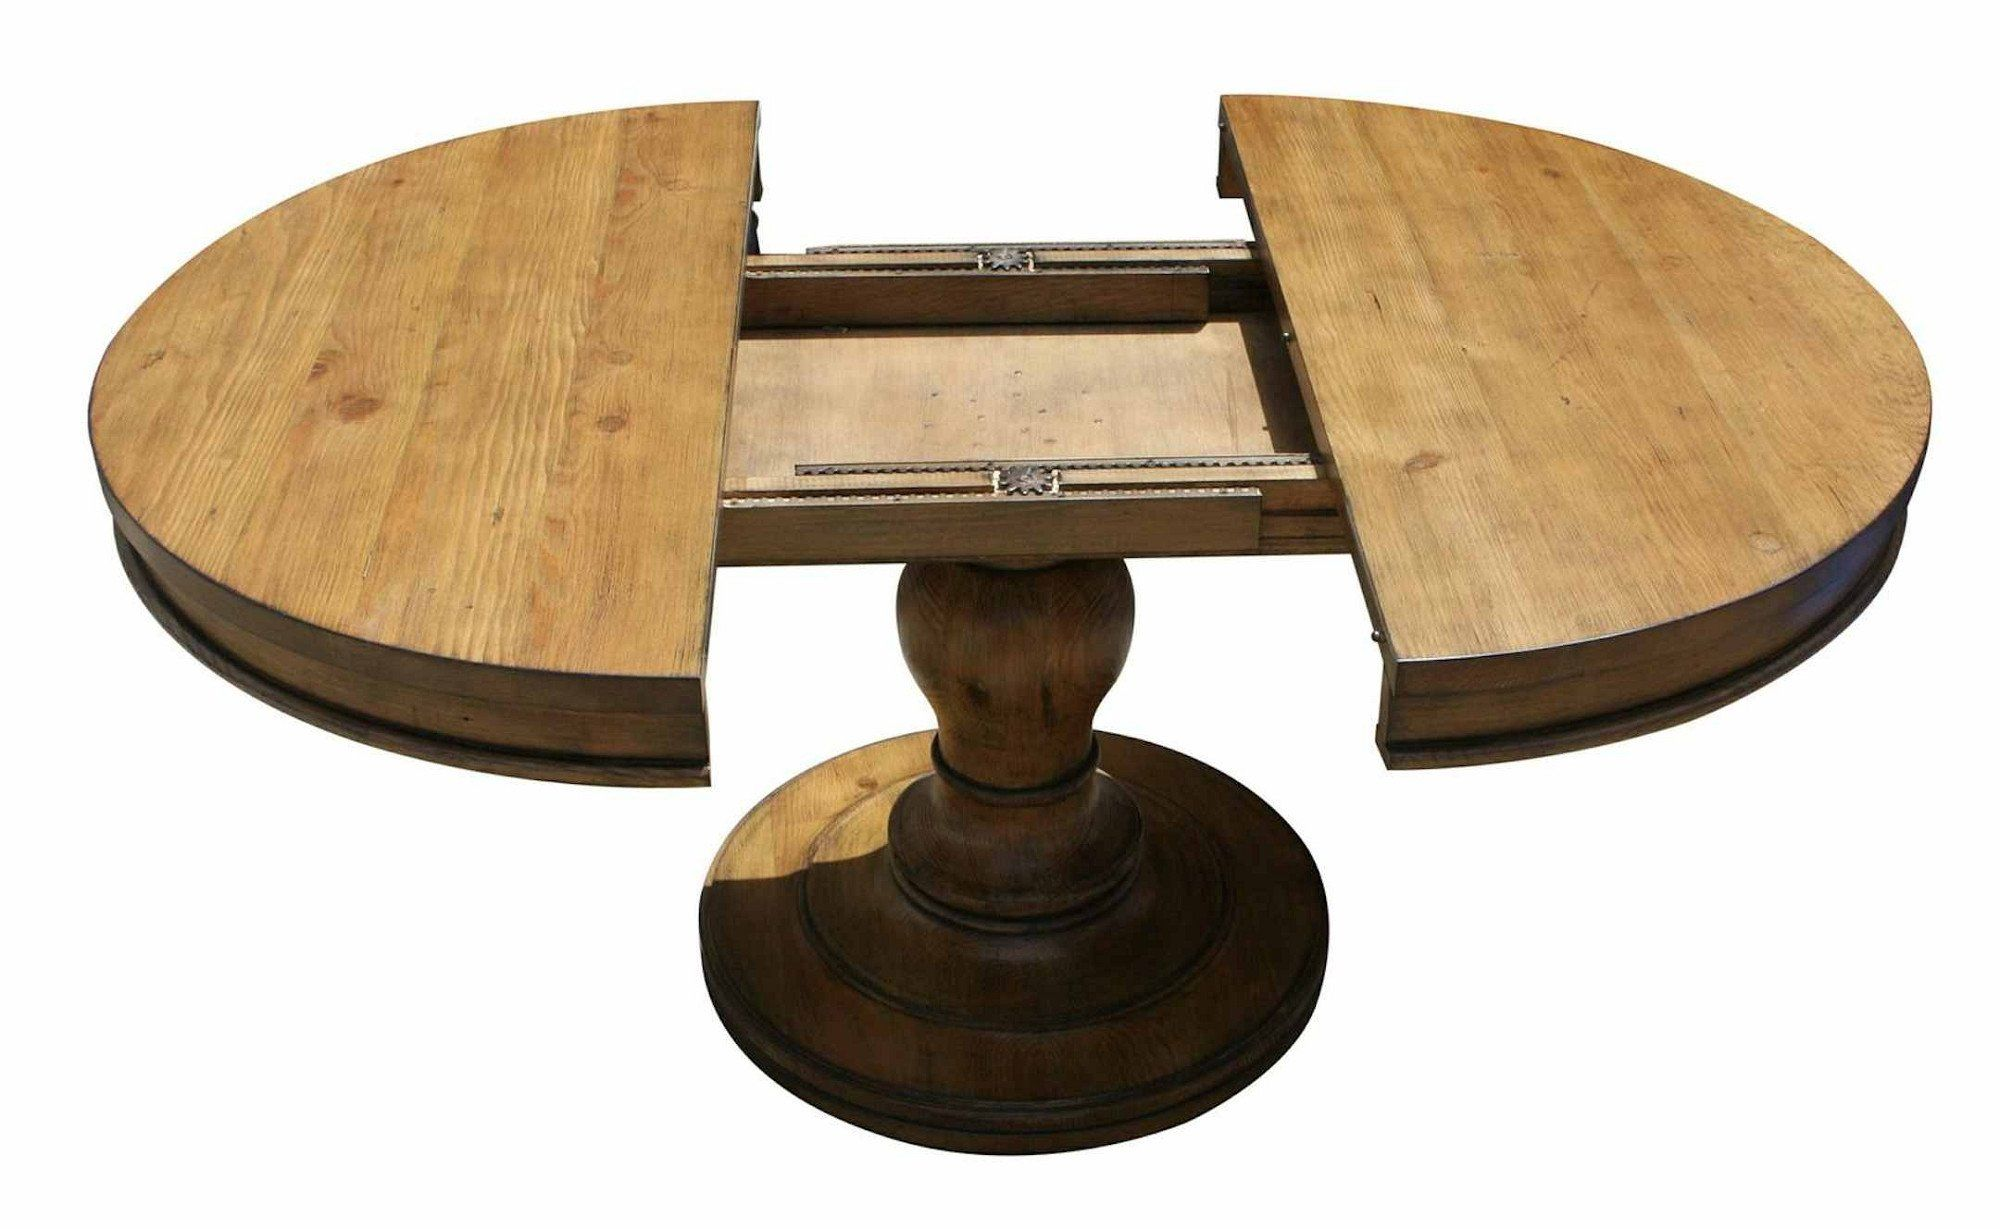 Westport Round Reclaimed Wood Extension Pedestal Table Dining